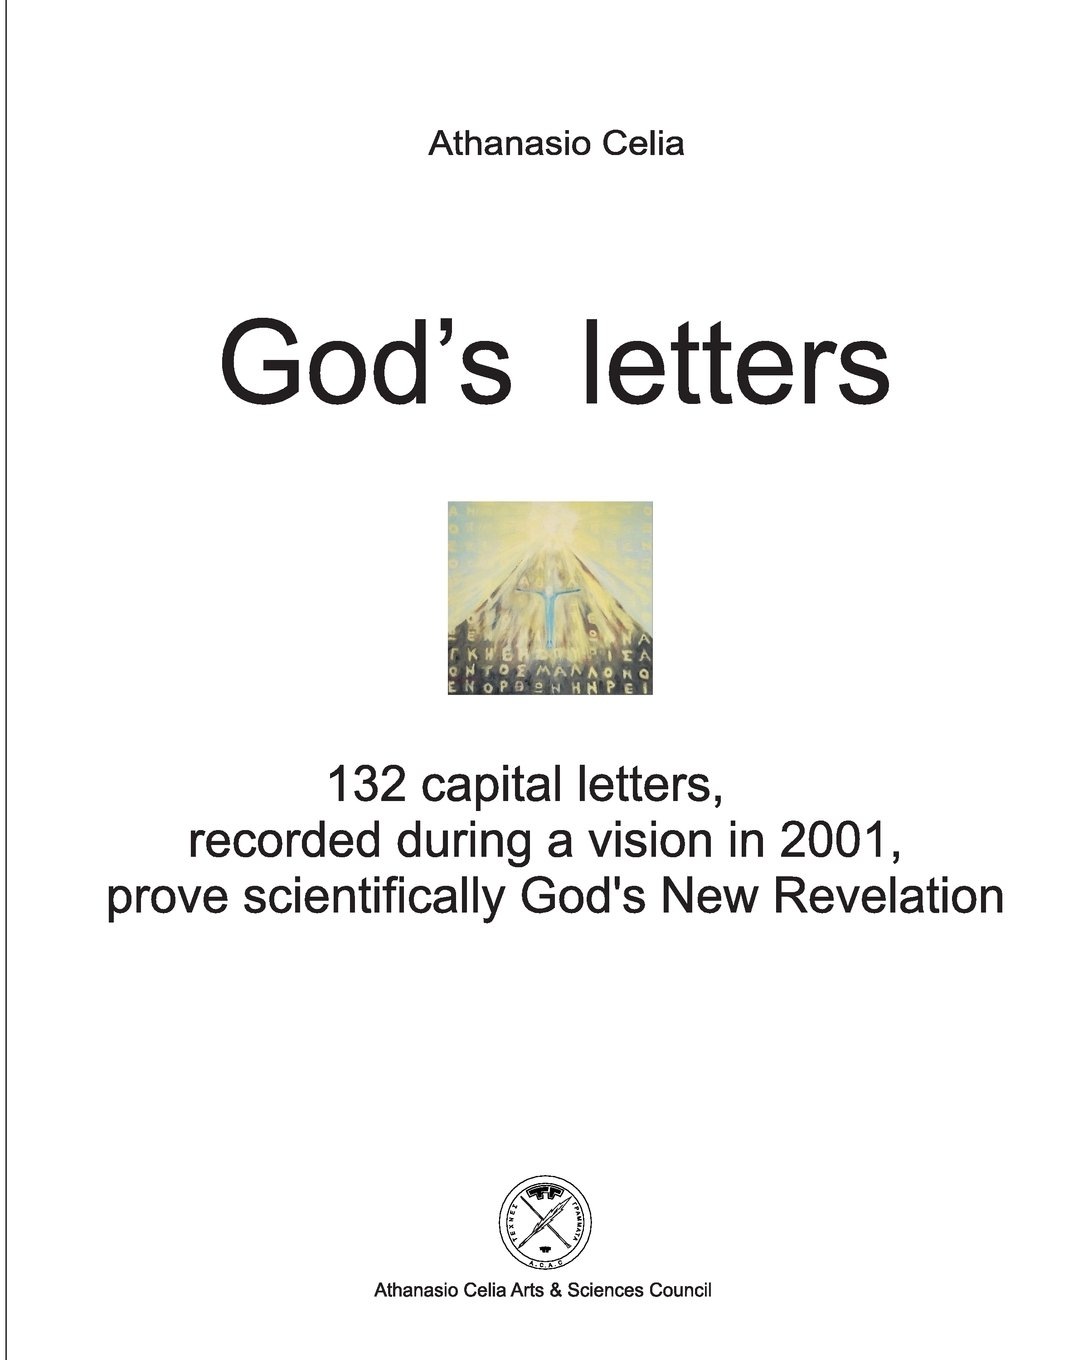 God's letters: 132 capital letters, recorded during a vision in 2001, prove scientifically God's New Revelation pdf